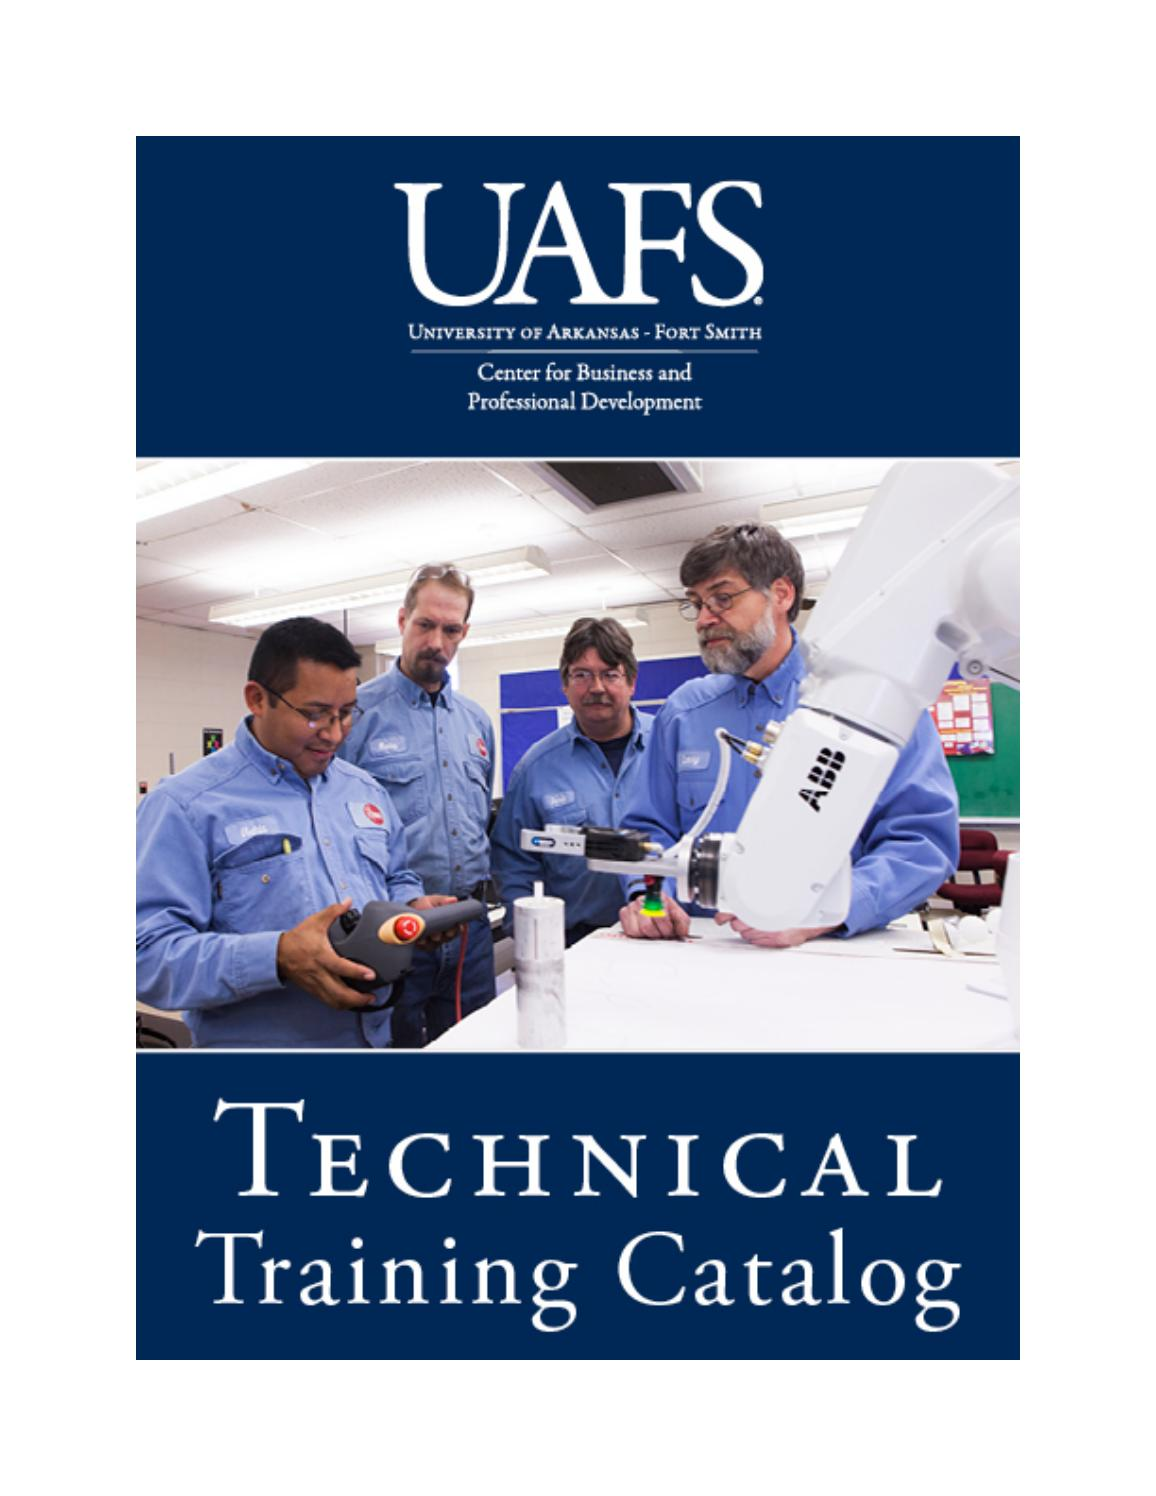 CBPD Technical Training catalog by University of Arkansas